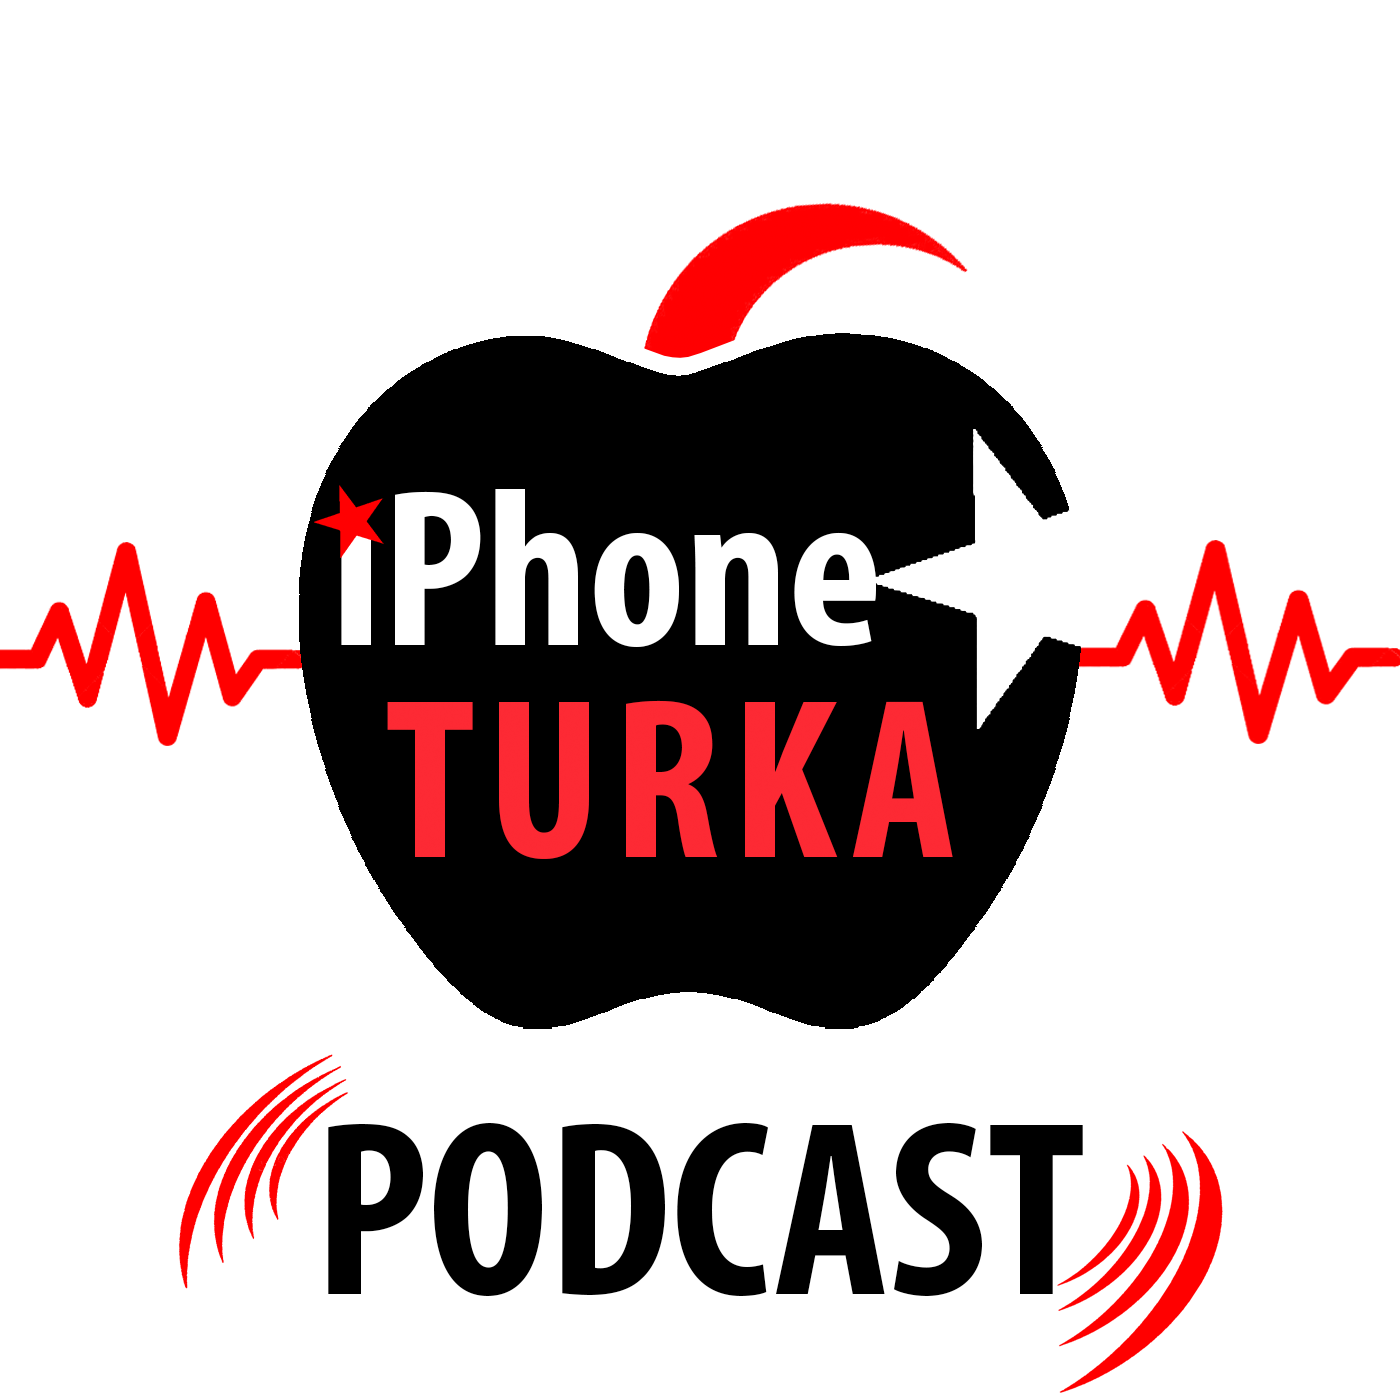 iPhone Turka Podcast